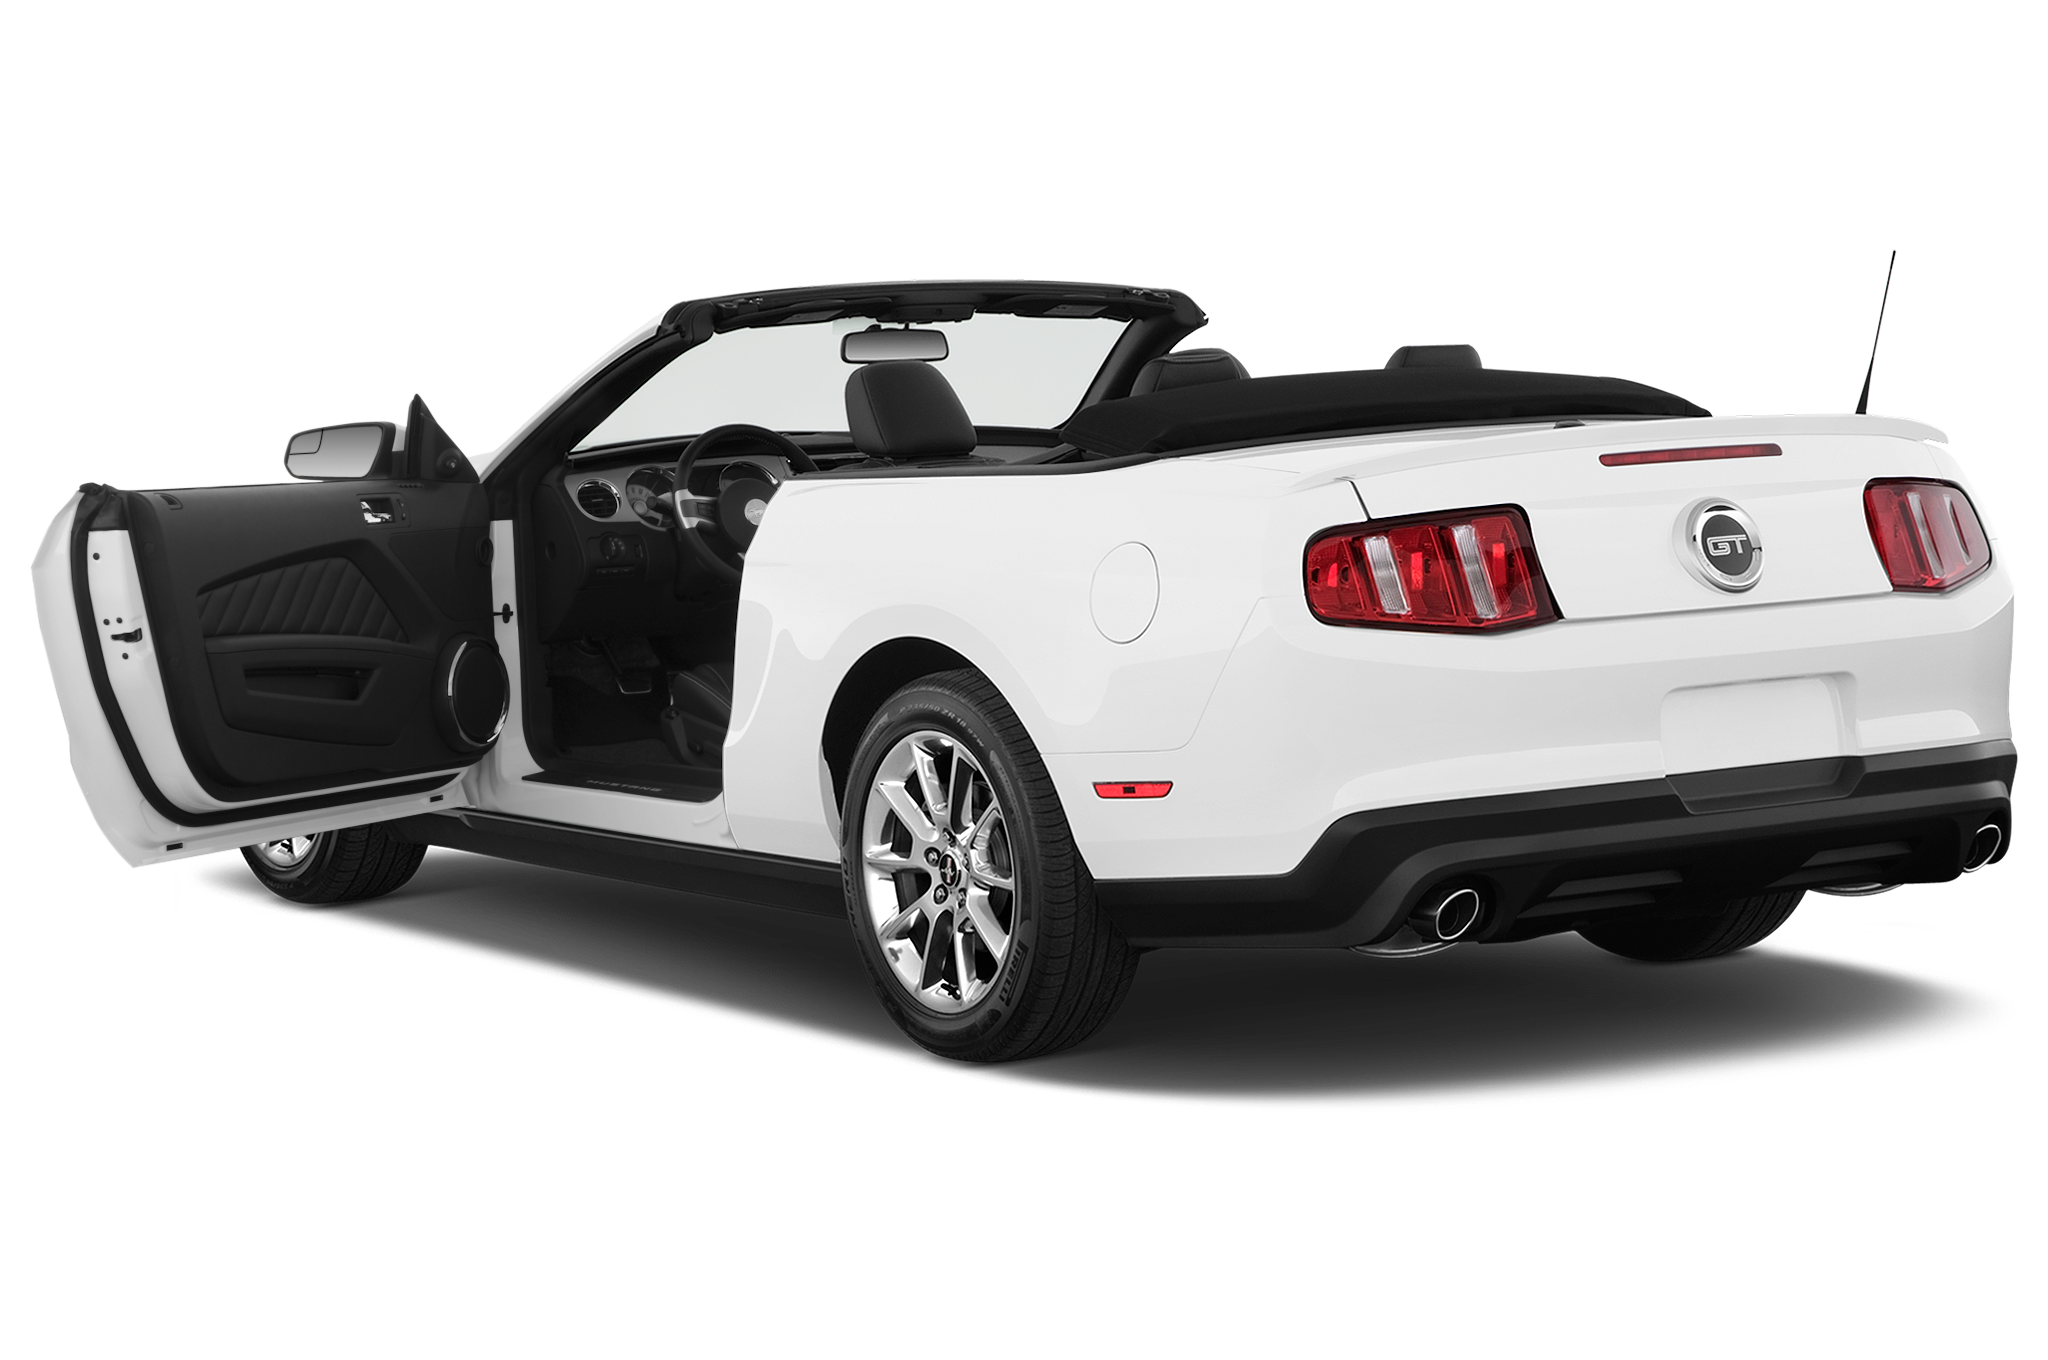 first look 2011 ford mustang v 6 2009 la auto show coverage new car reviews concept cars. Black Bedroom Furniture Sets. Home Design Ideas